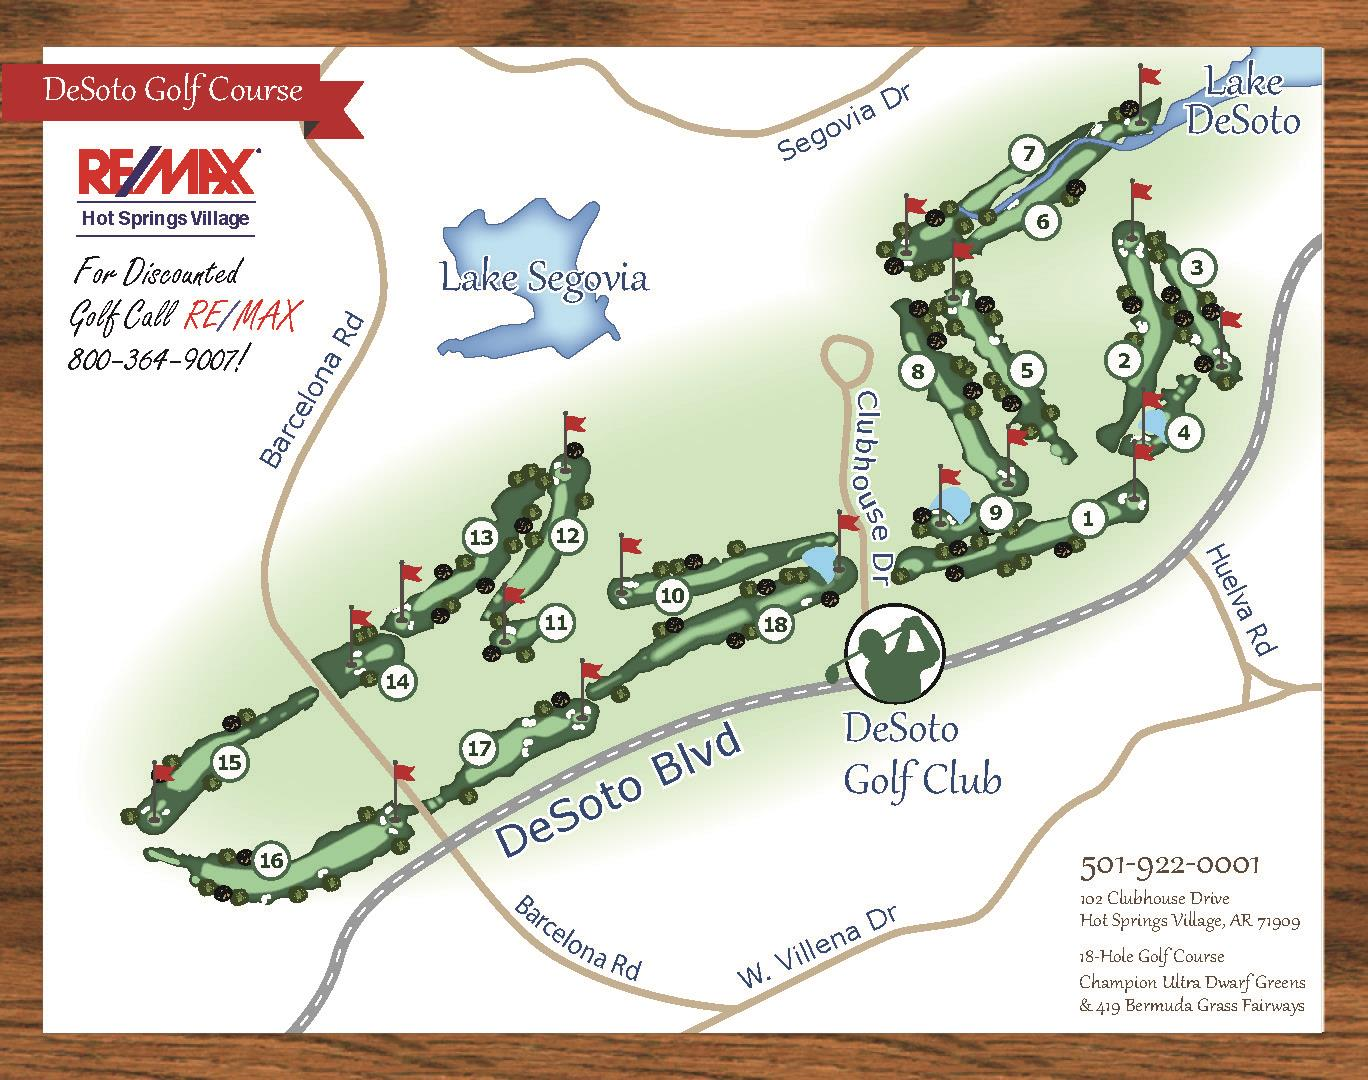 DeSoto Golf Course Map